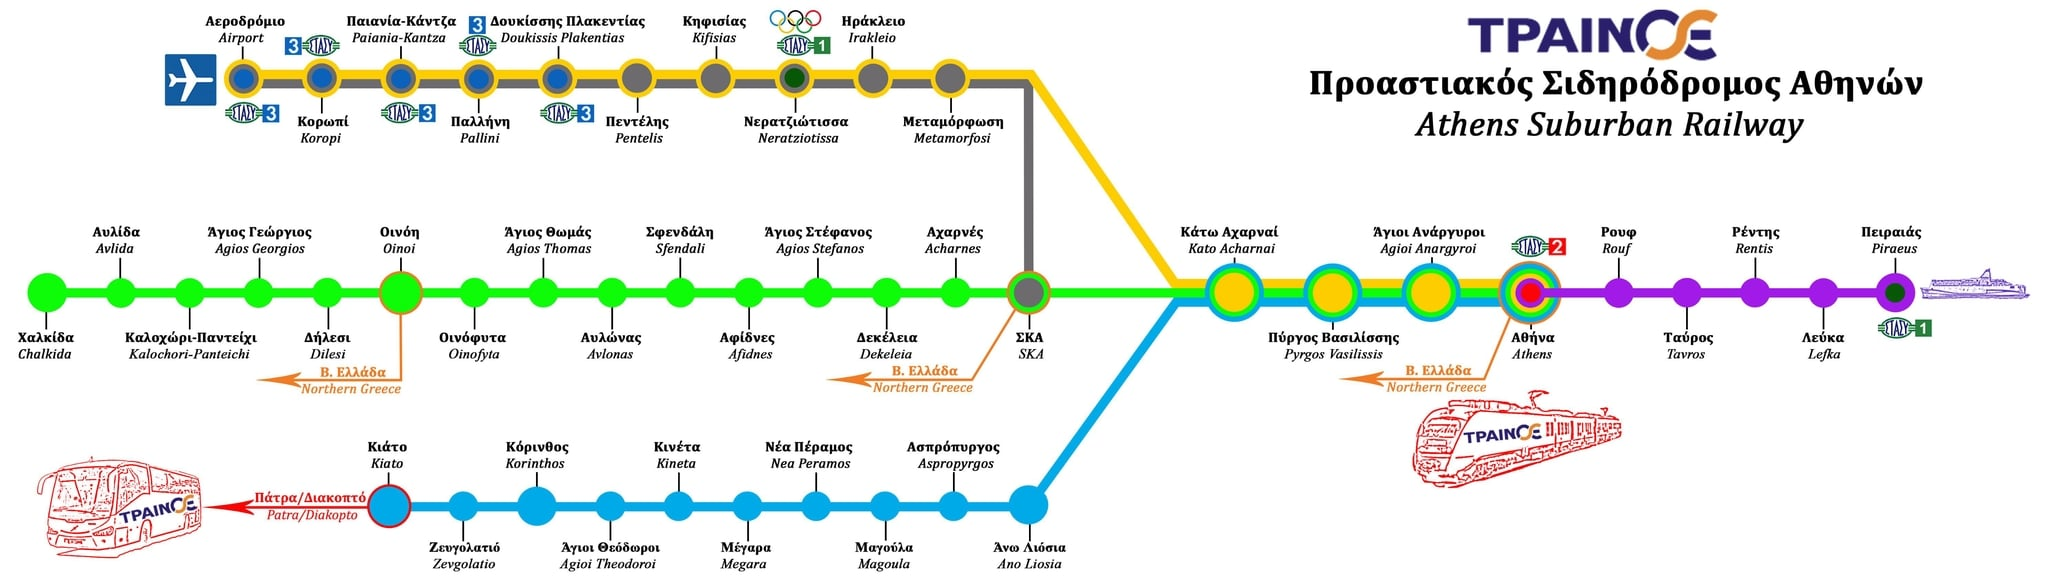 Athens Suburban Railway Map - Linking Athens International Airport with the city of Athens, the port of Piraeus, Kiato, and the greek mainline railway to the north.